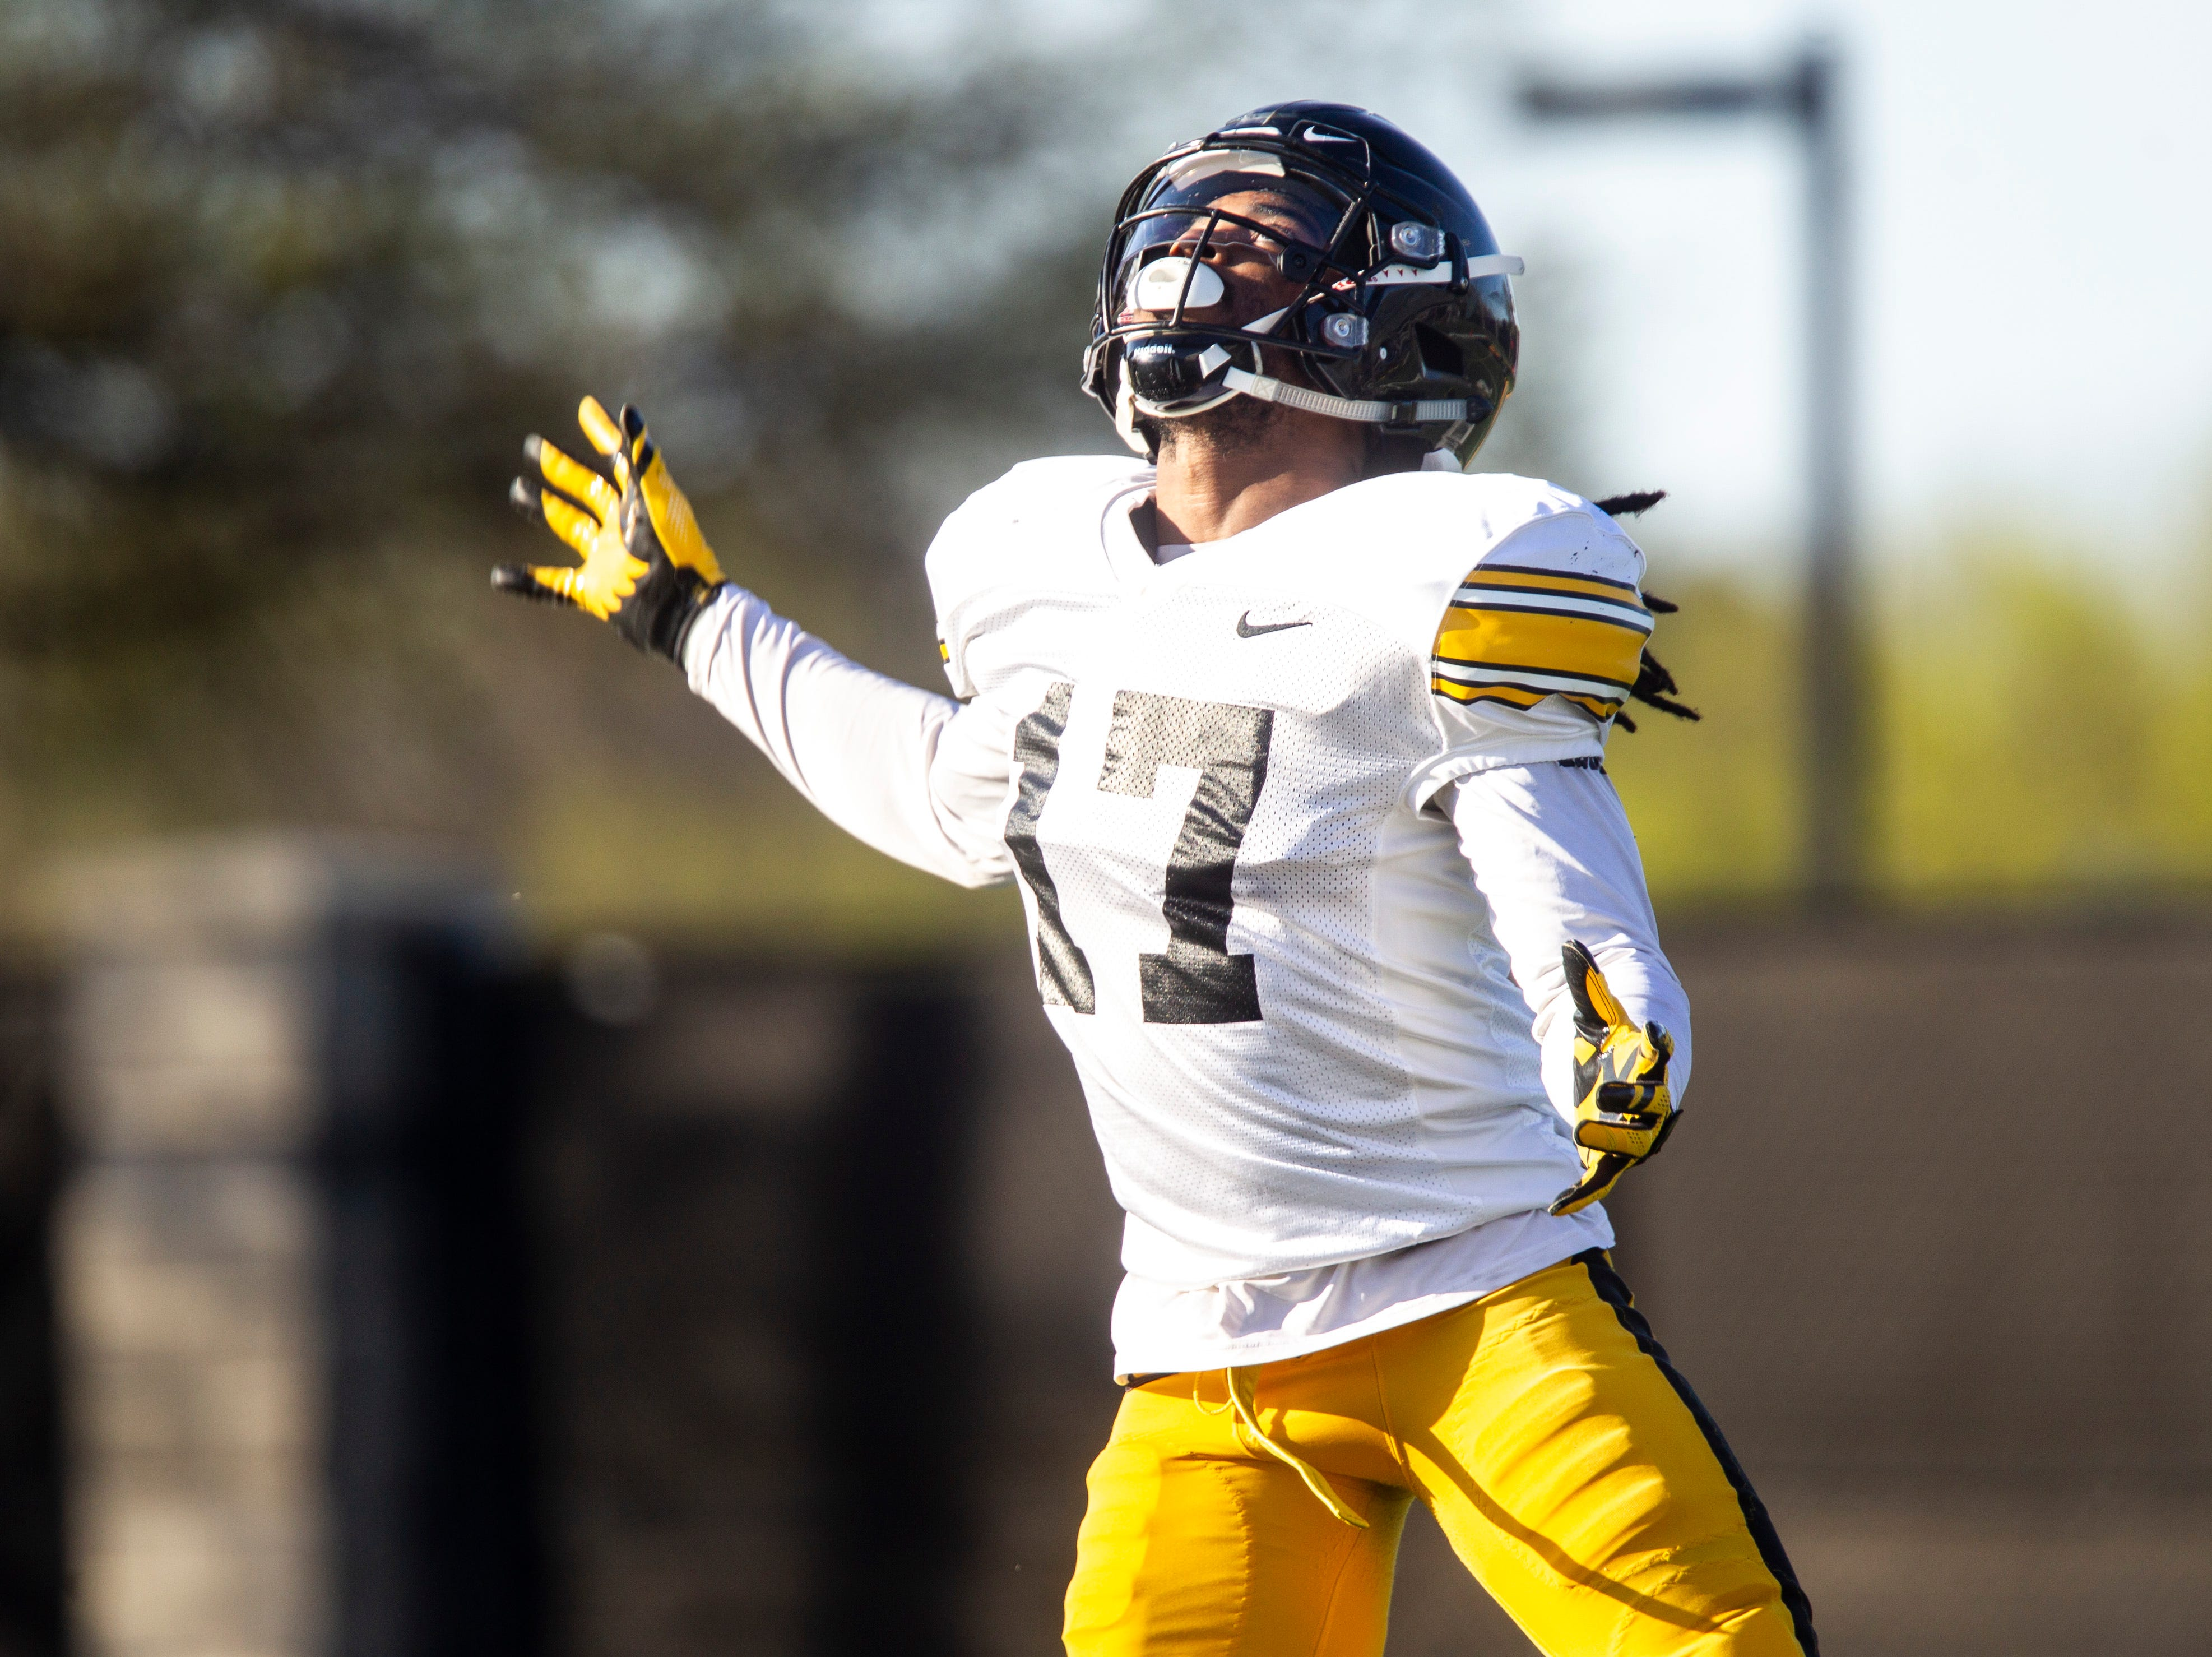 Iowa defensive back Devonte Young (17) tries to field a punt during the final spring football practice, Friday, April 26, 2019, at the University of Iowa outdoor practice facility in Iowa City, Iowa.